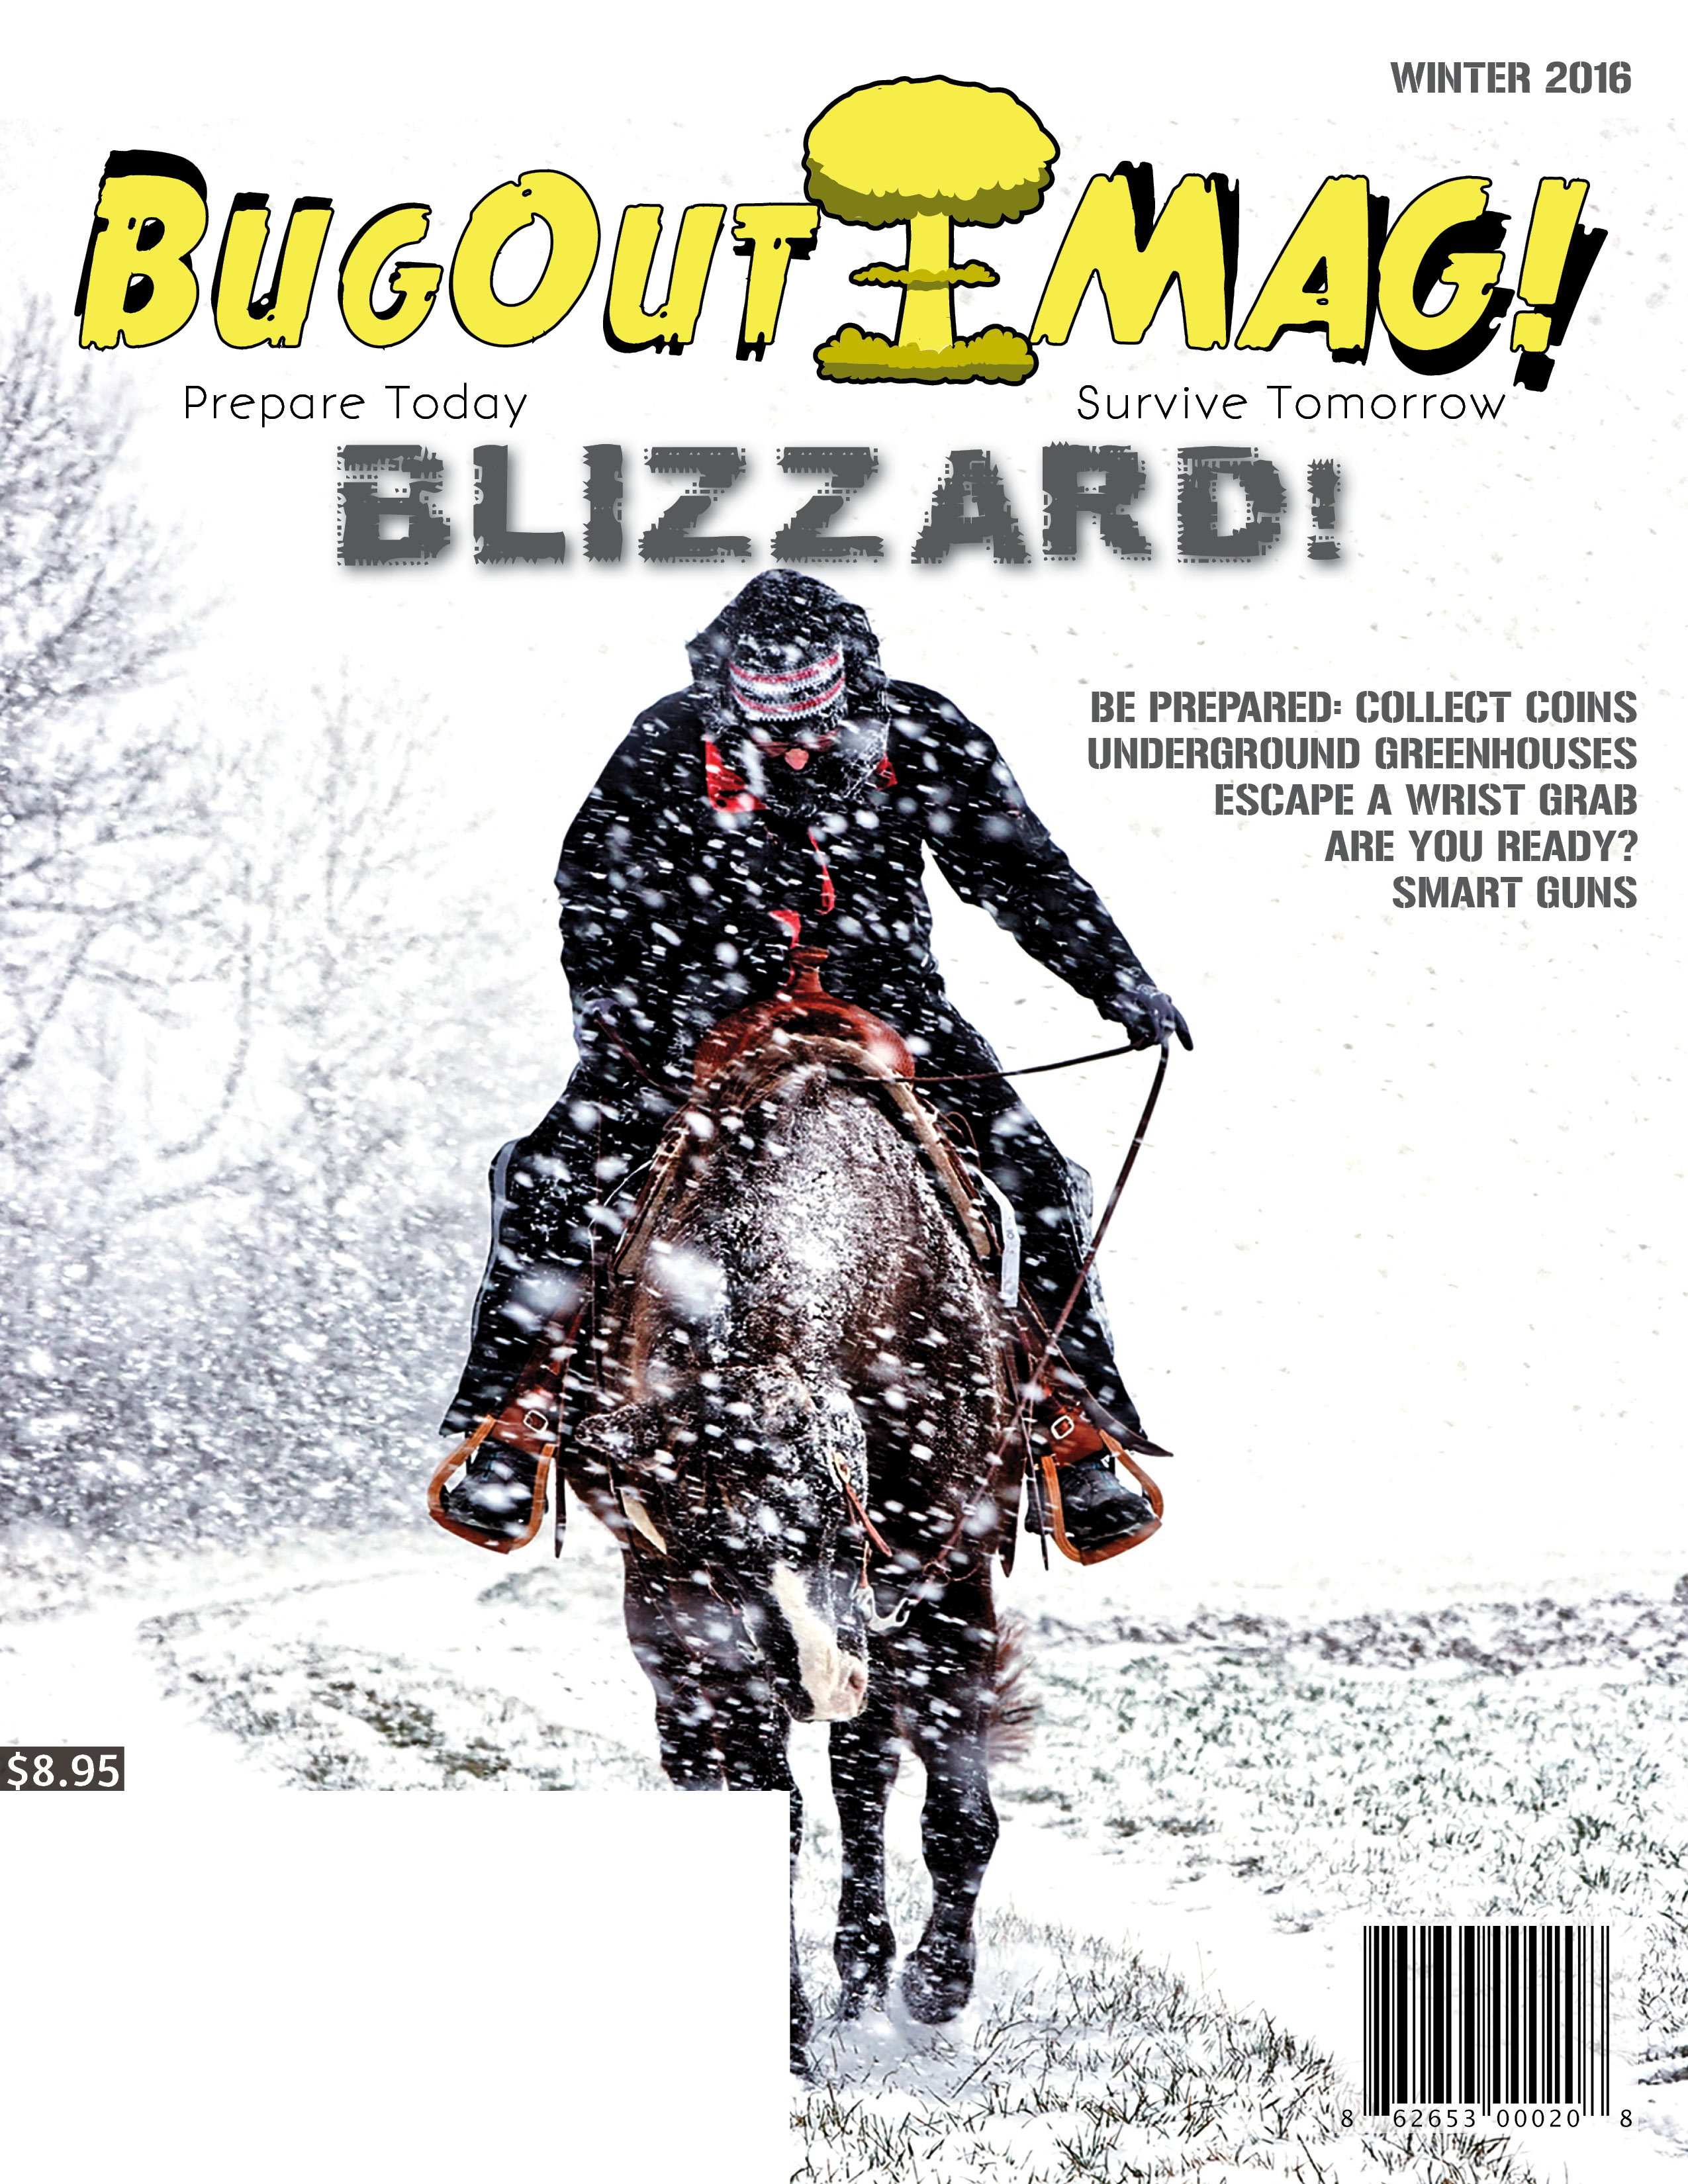 BugOut MAG! Winter 2016 issue